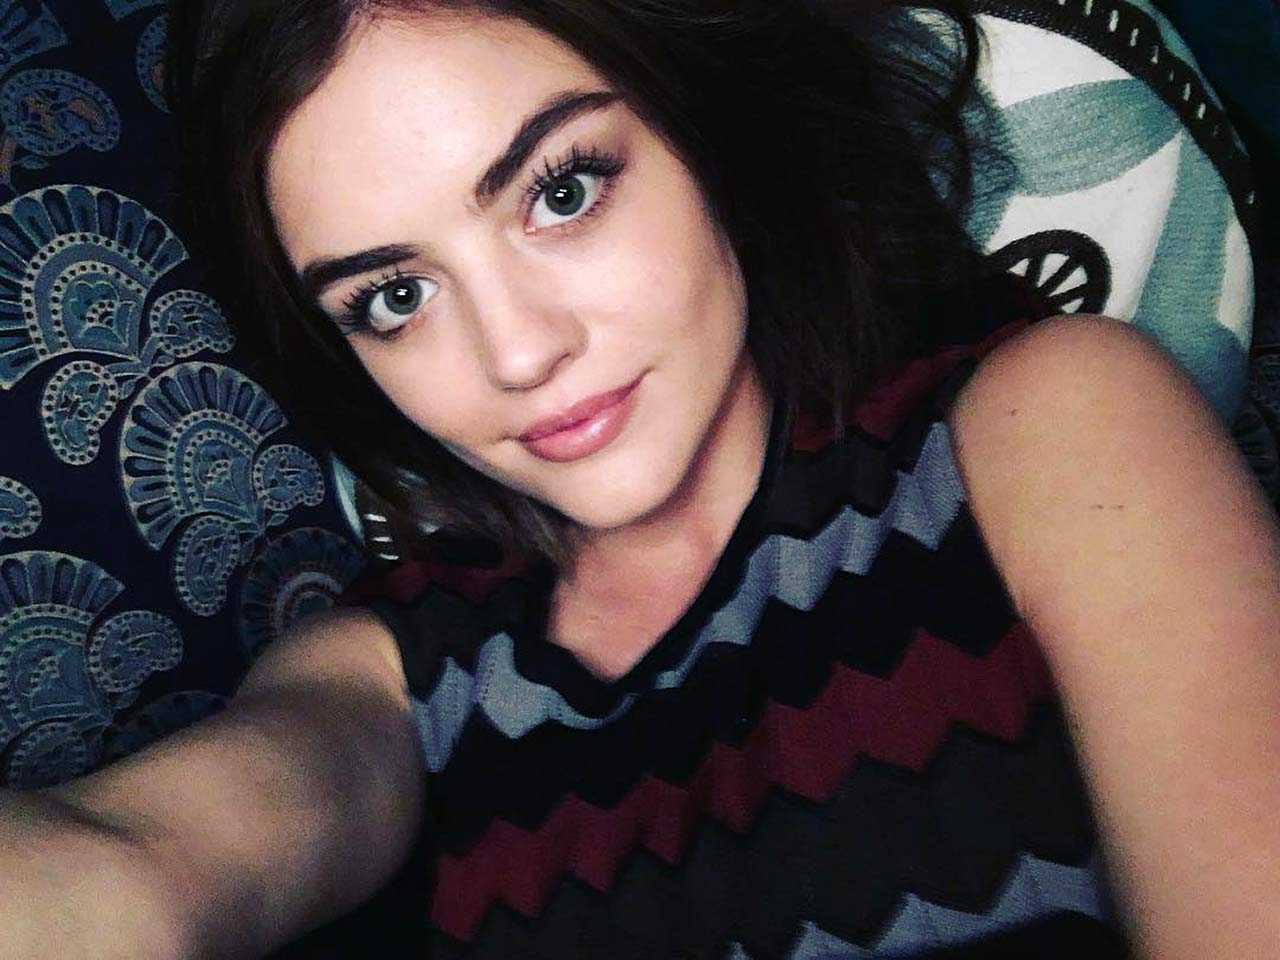 FULL VIDEO: Lucy Hale Nudes And Sex Tape Leaked!